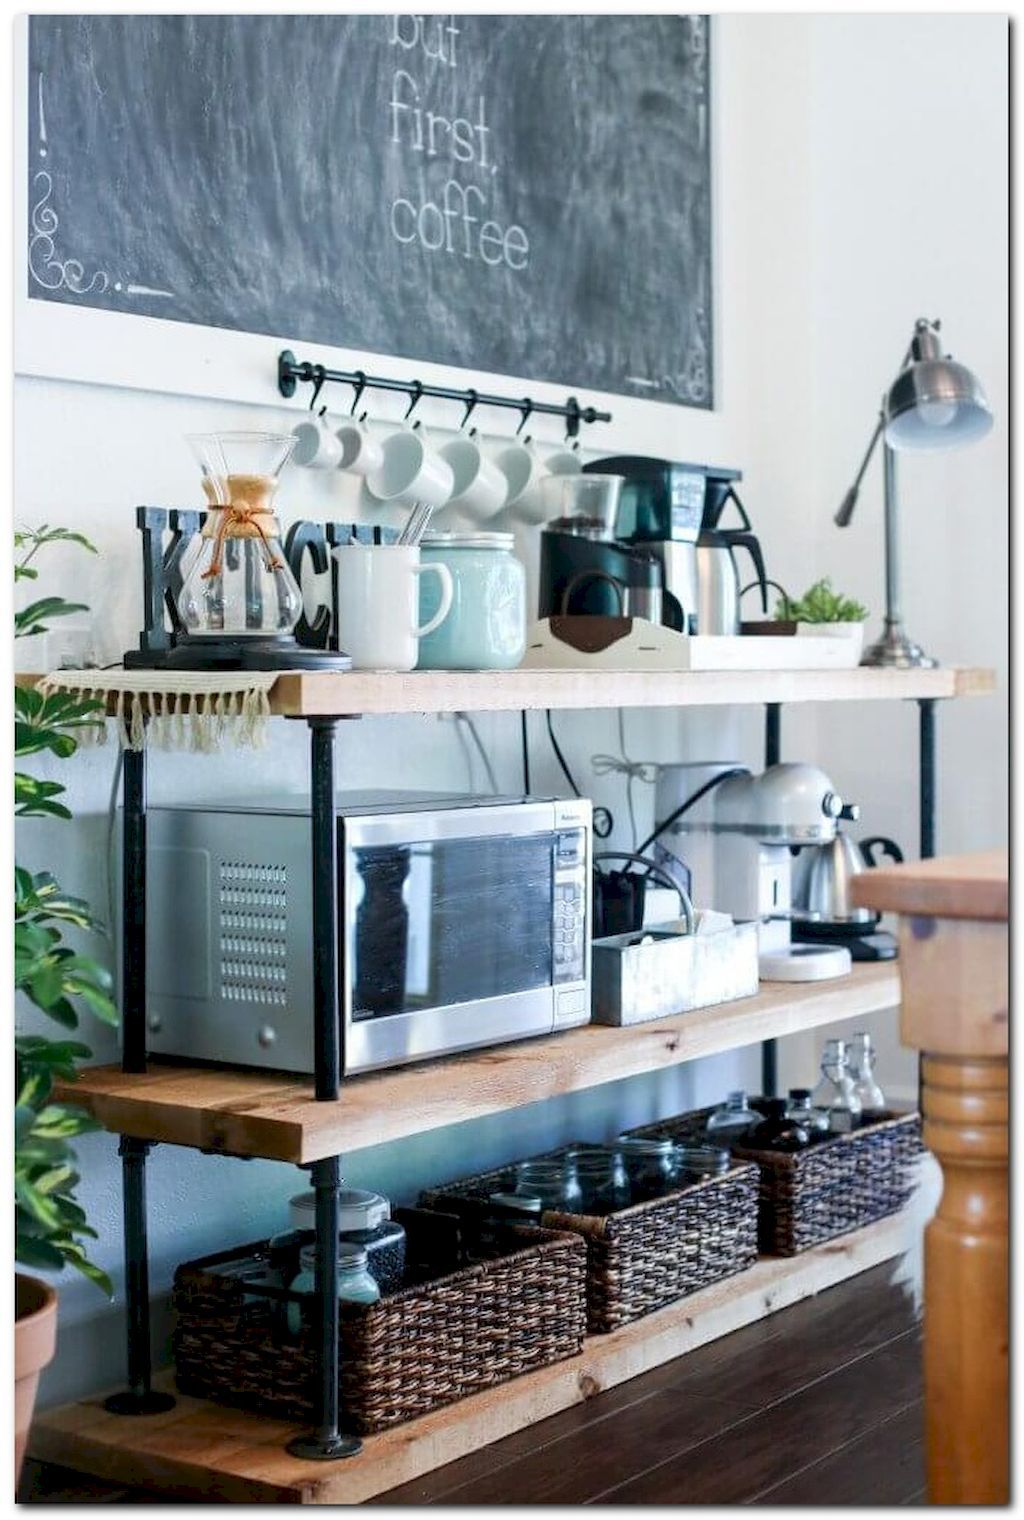 60 Simple Apartment Bar Cart Ideas on A Budget | Altbauwohnung und ...